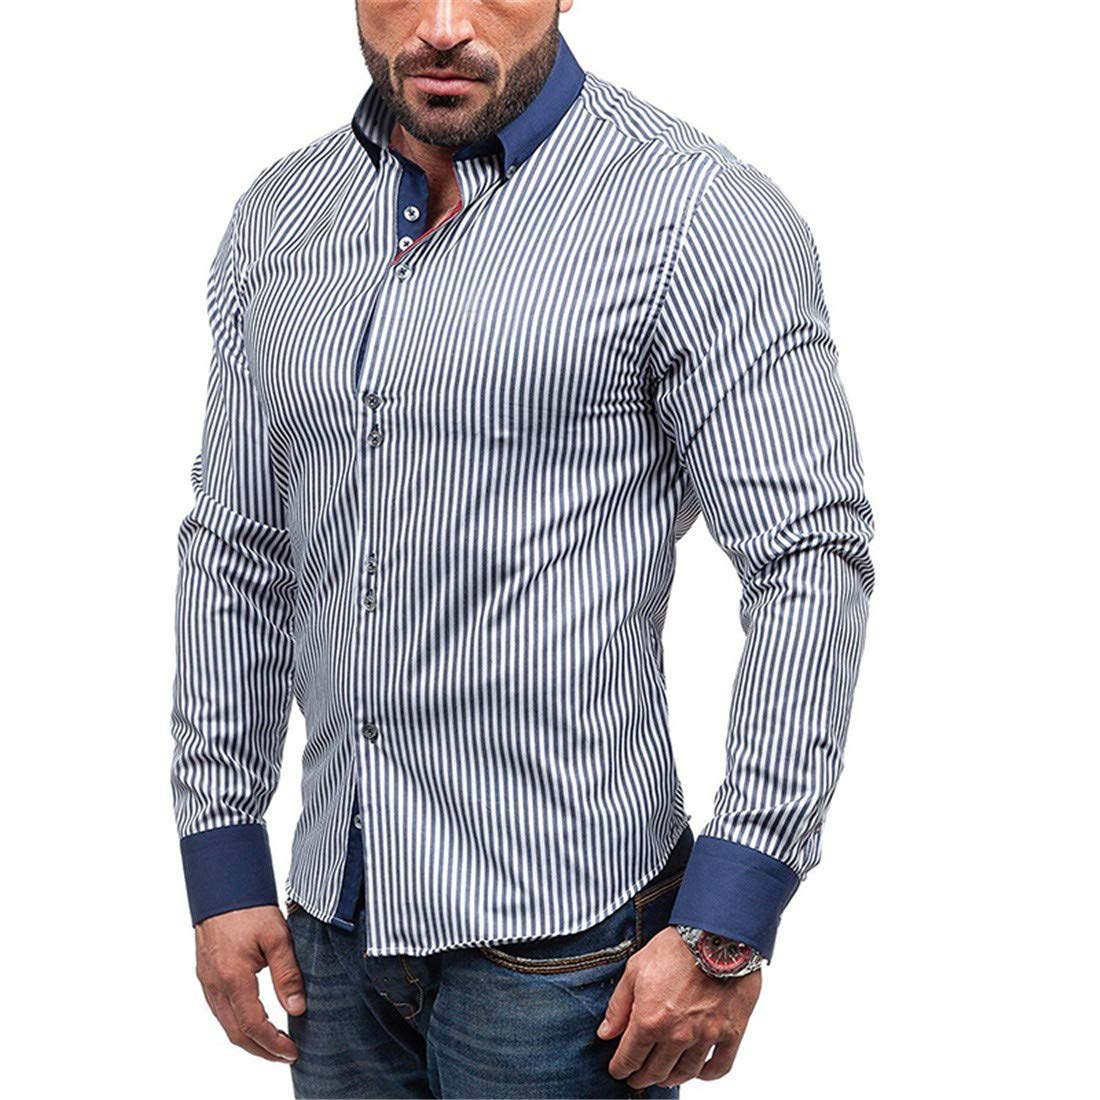 Autumn Winter Fashion Striped Printed Leisure Lapel Long Sleeved Shirt for Men